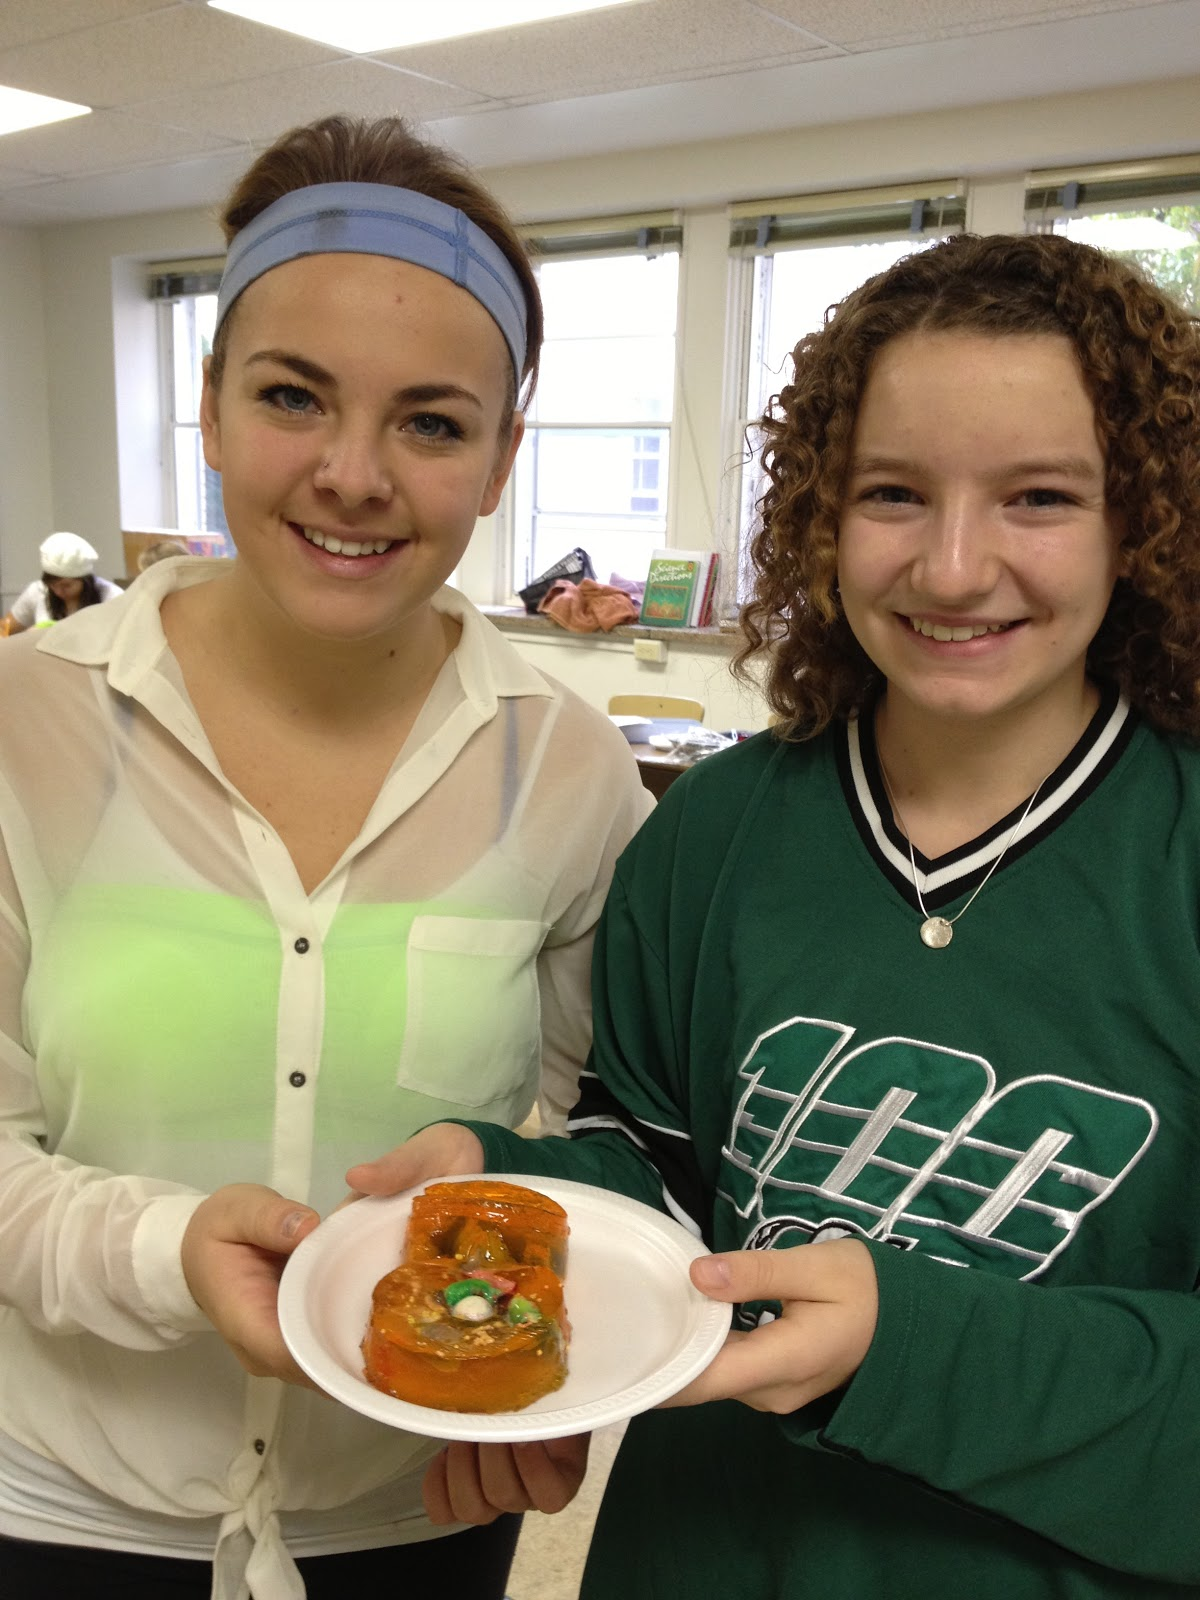 Tilfords Treats Friday 3d Cell Diagram We Had Some Great Diagrams On Caitlin And Kenzie Made A Plant Out Of Jello